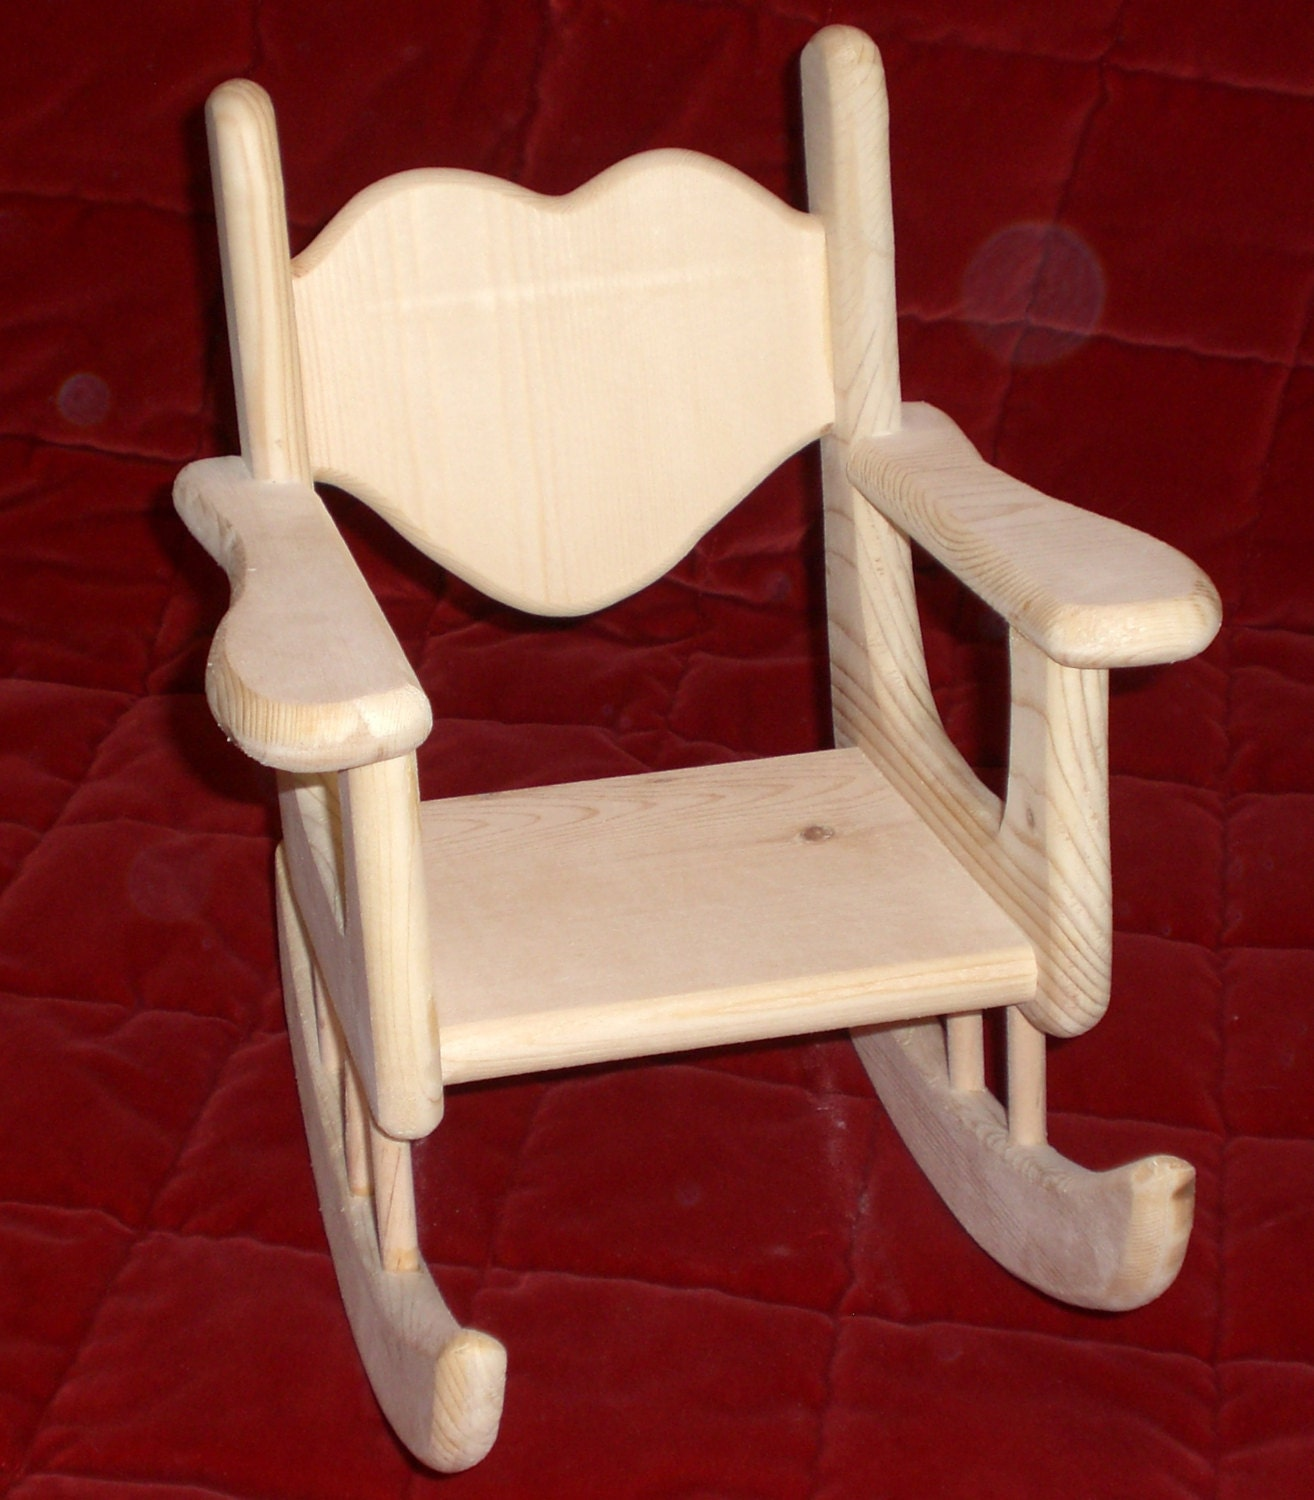 Unfinished Rocking Chair For American Girl Size Doll By Judy